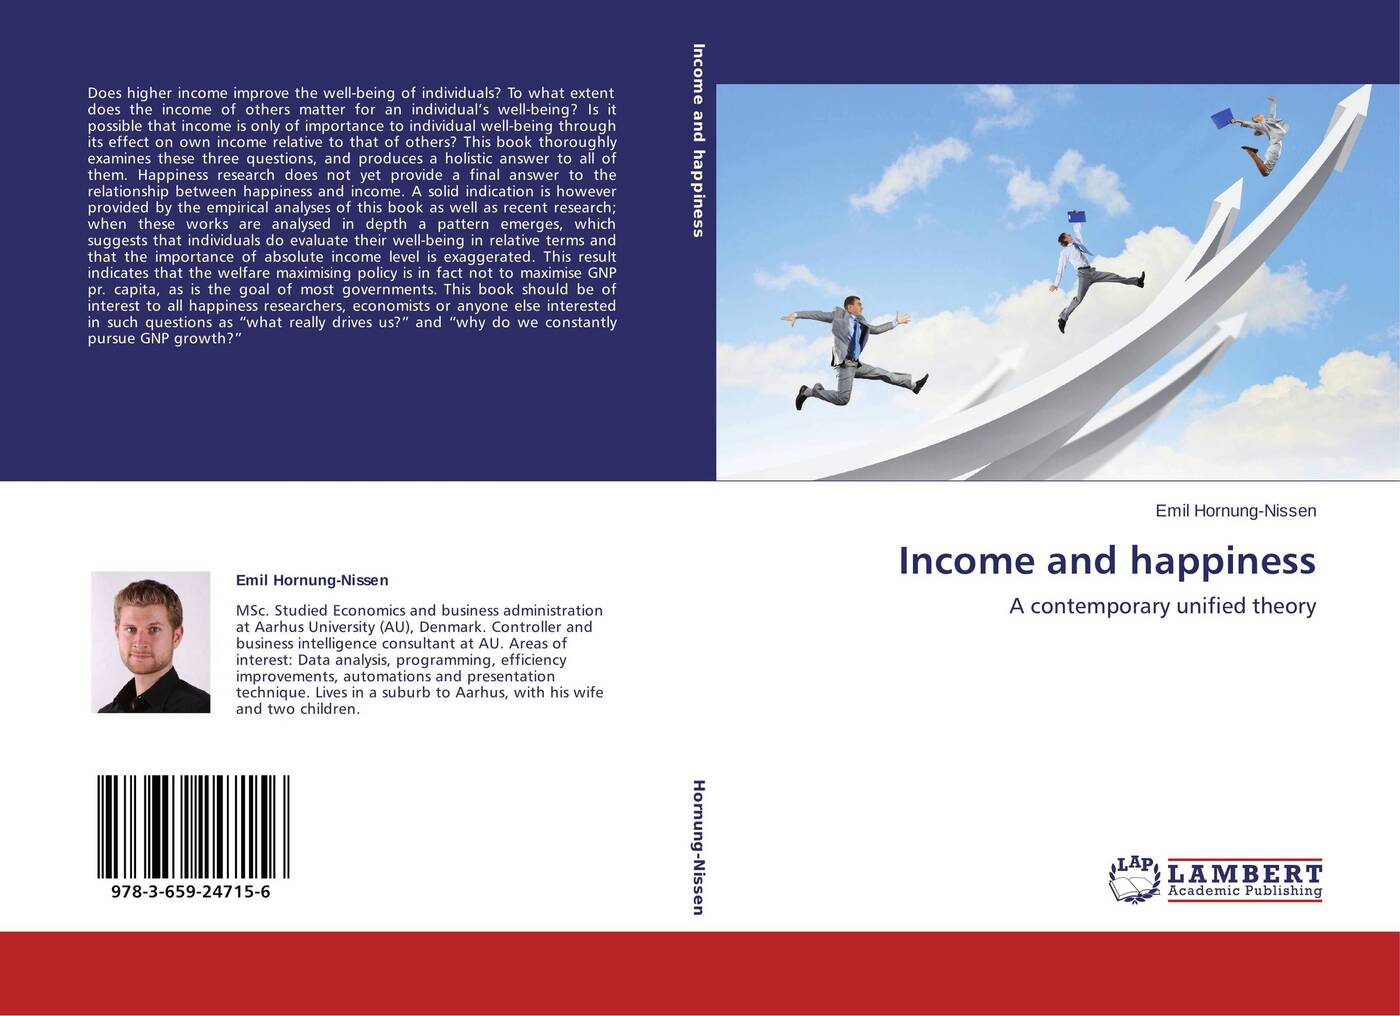 Emil Hornung-Nissen Income and happiness dori seider a place called happiness creating the foundations of personal well being